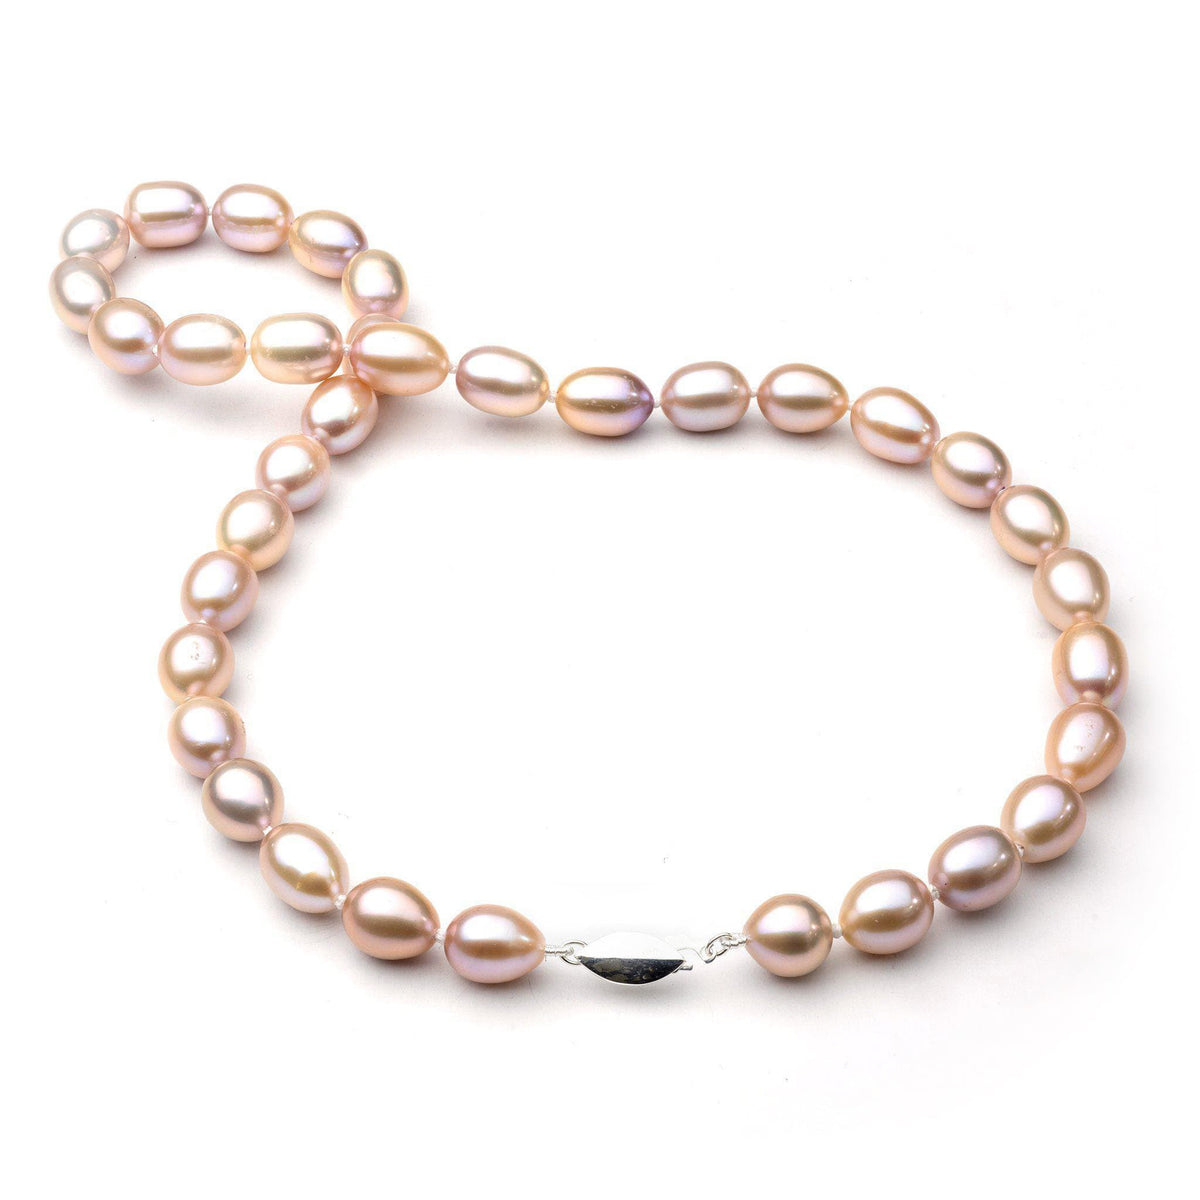 Freshwater Pearl Strand in Sterling Silver (9-10mm)